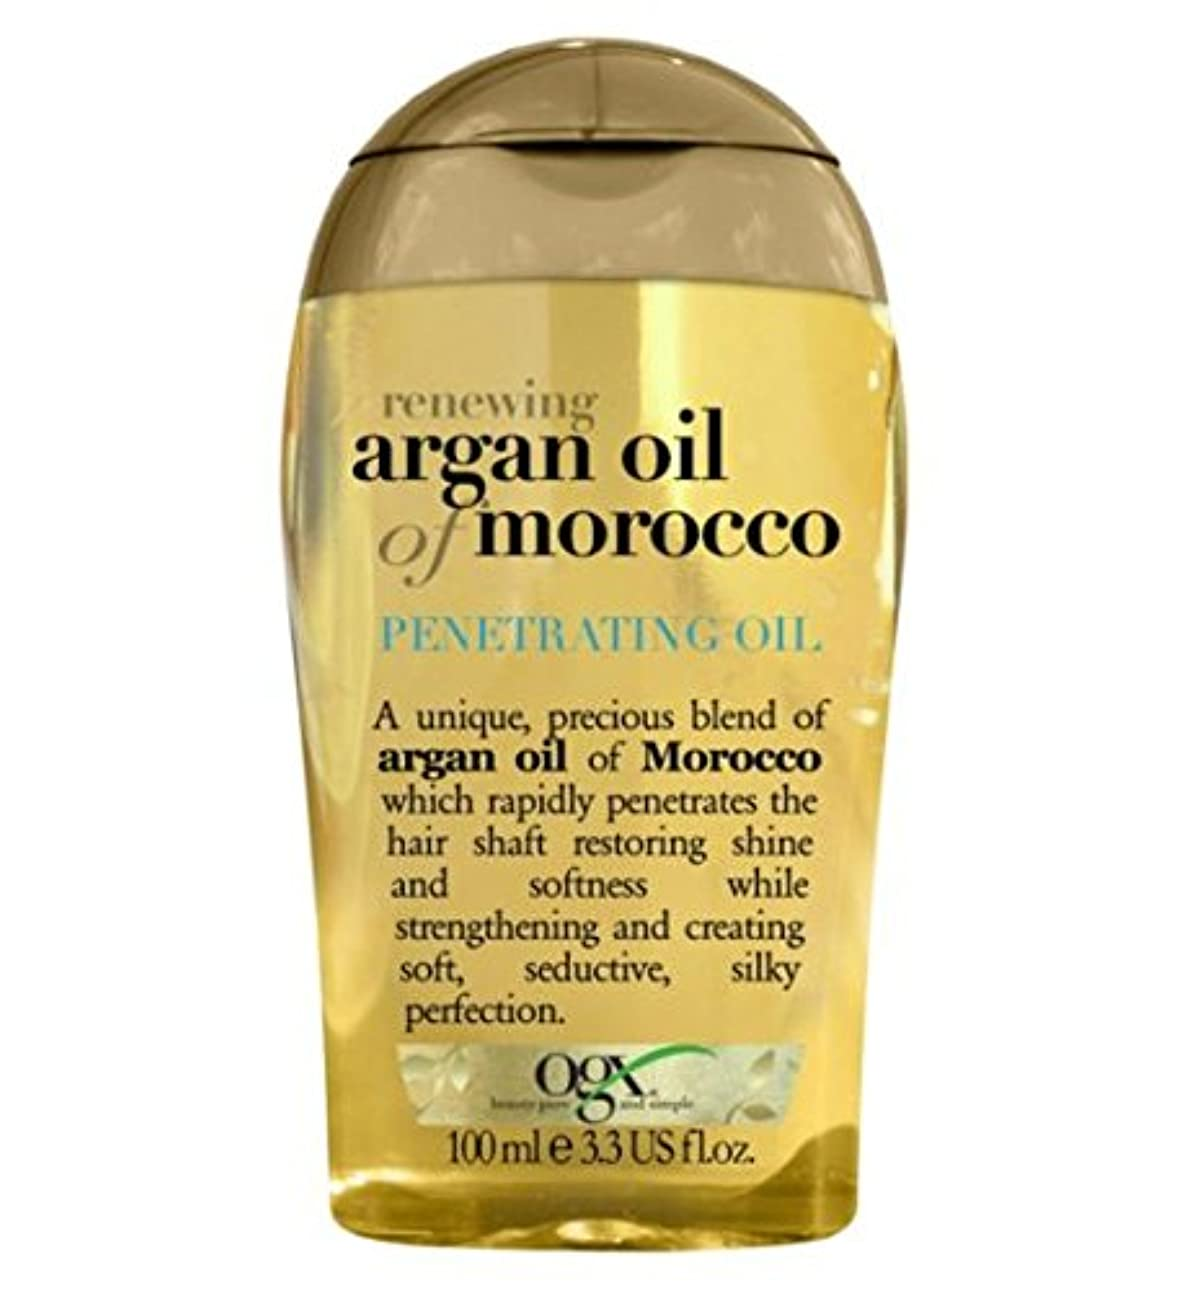 中絶スラム街あさりOrganix Moroccan Argan Oil Penetrating Oil 100 ml (並行輸入品)